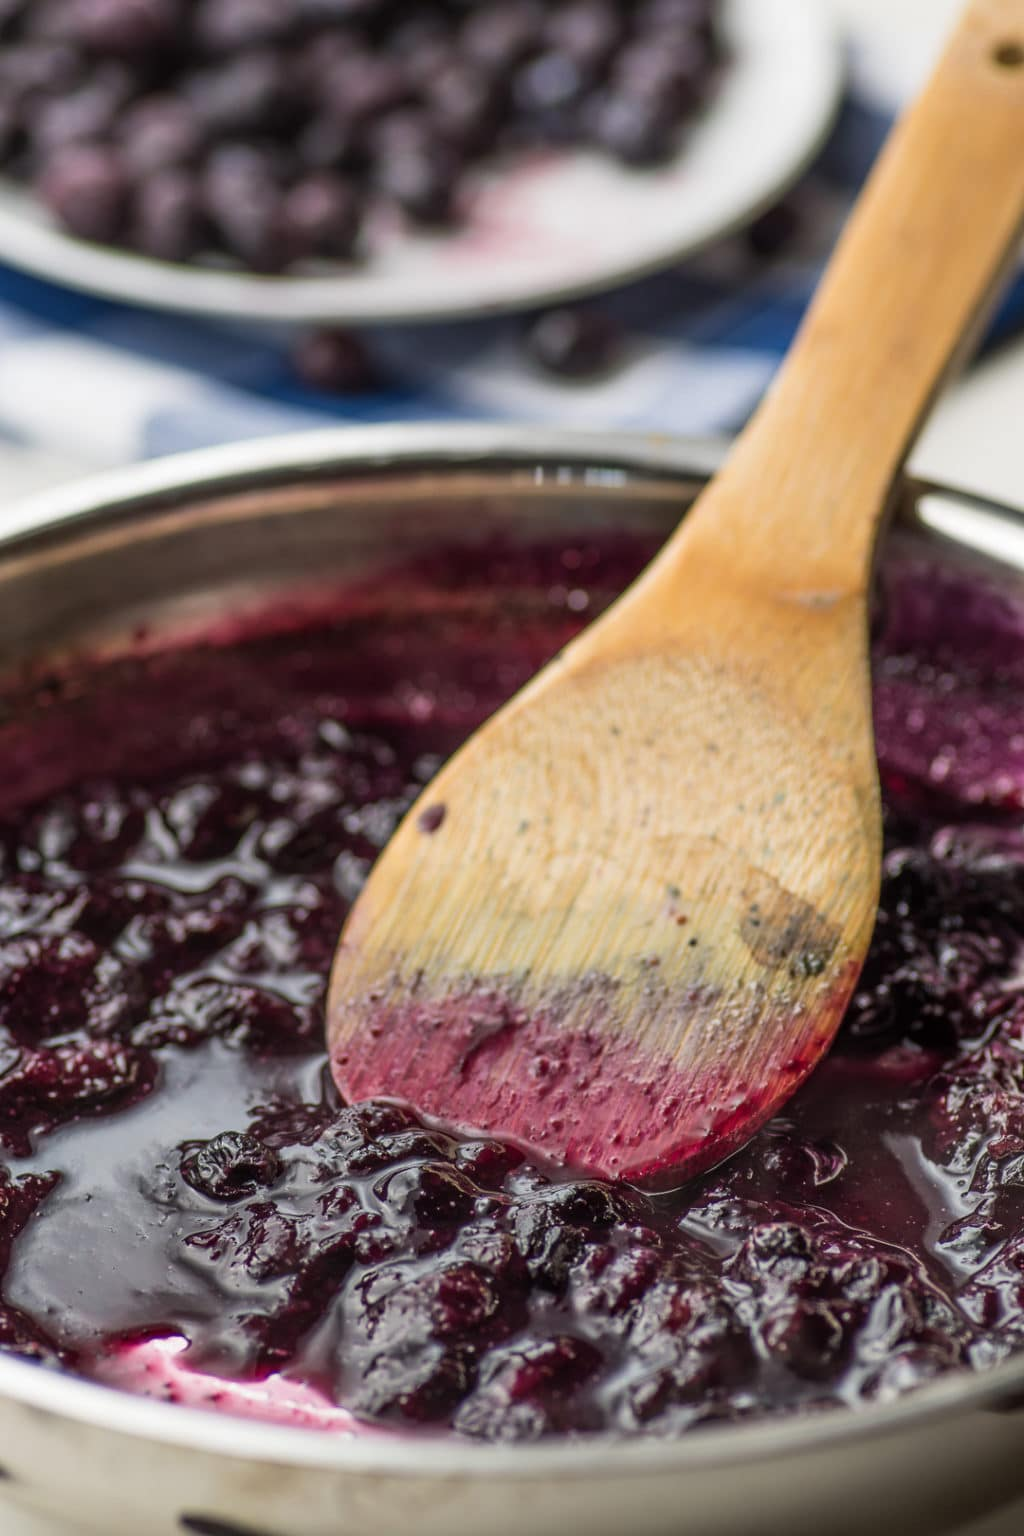 A silver sauce pan with cooked blueberries and a wooden spoon